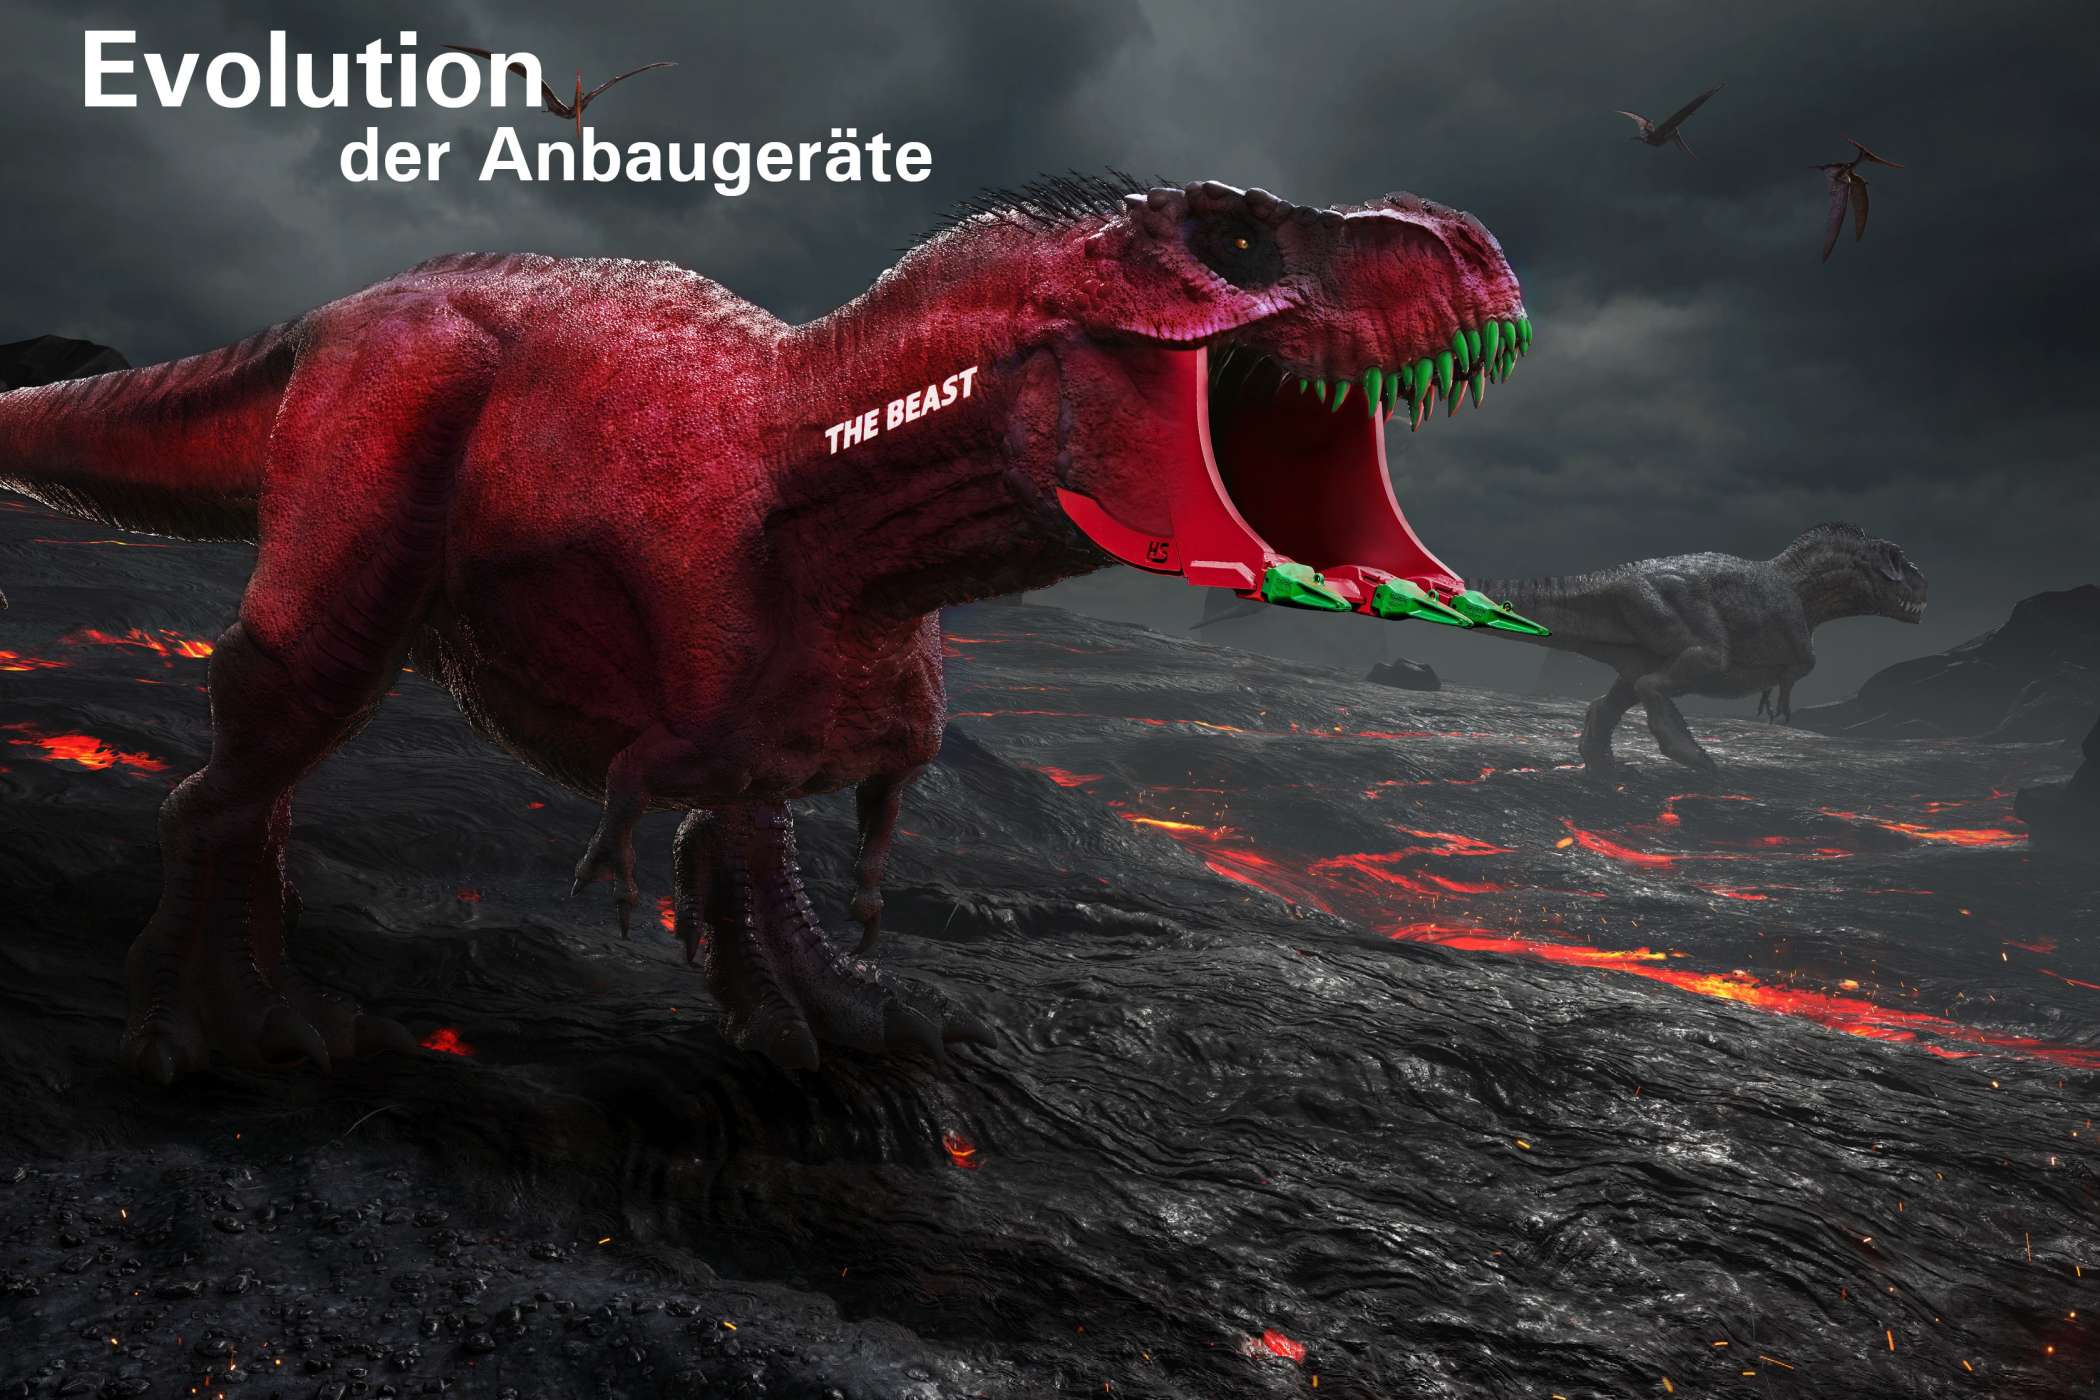 "Das Motto des Messestandes ""Evolution der Anbaugeräte - Meet the Beast!"" 